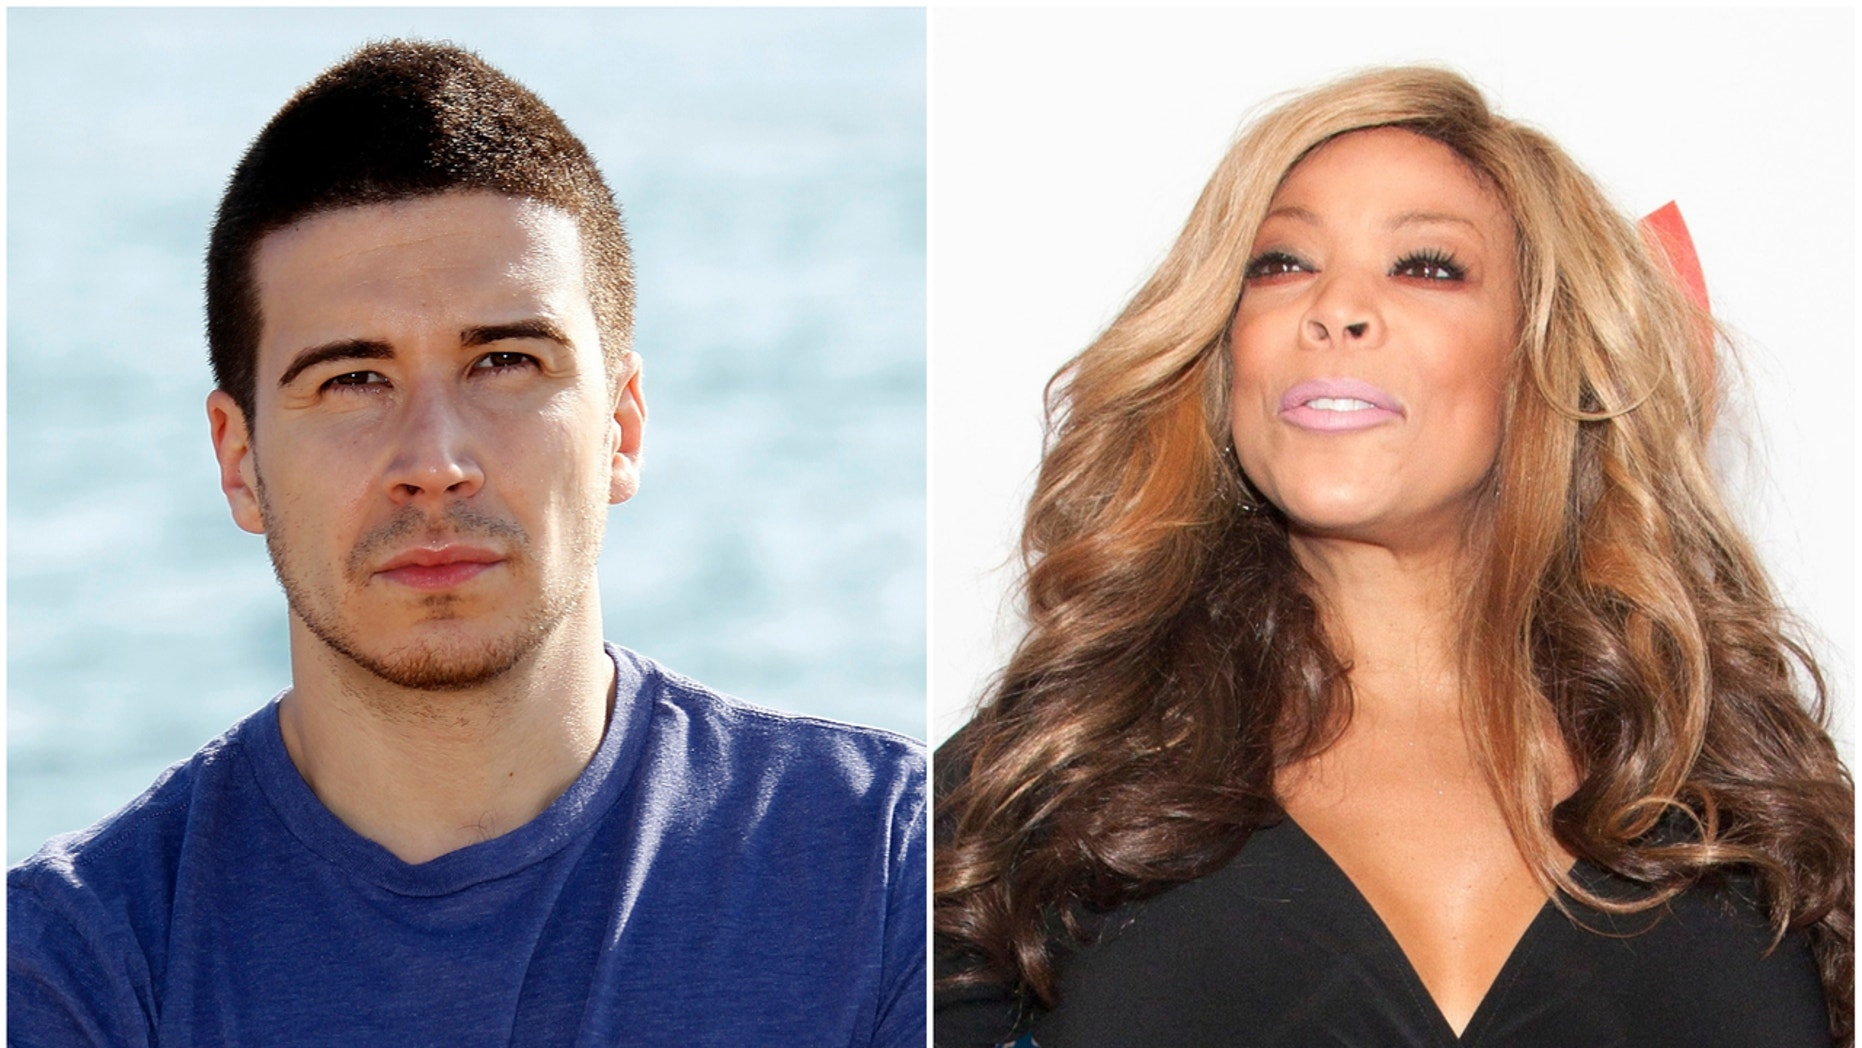 """Jersey Shore"" star Vinny Guadagnino slammed Wendy Williams for tweeting about his relationship."